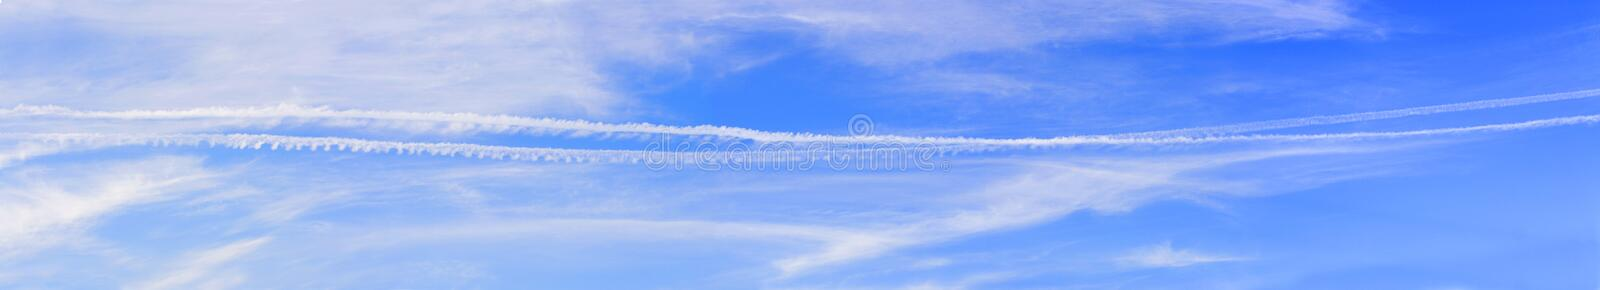 Panorama of the sky with beautiful clouds and traces of aircraft – a wide panoramic view in high resolution and high quality royalty free stock photos